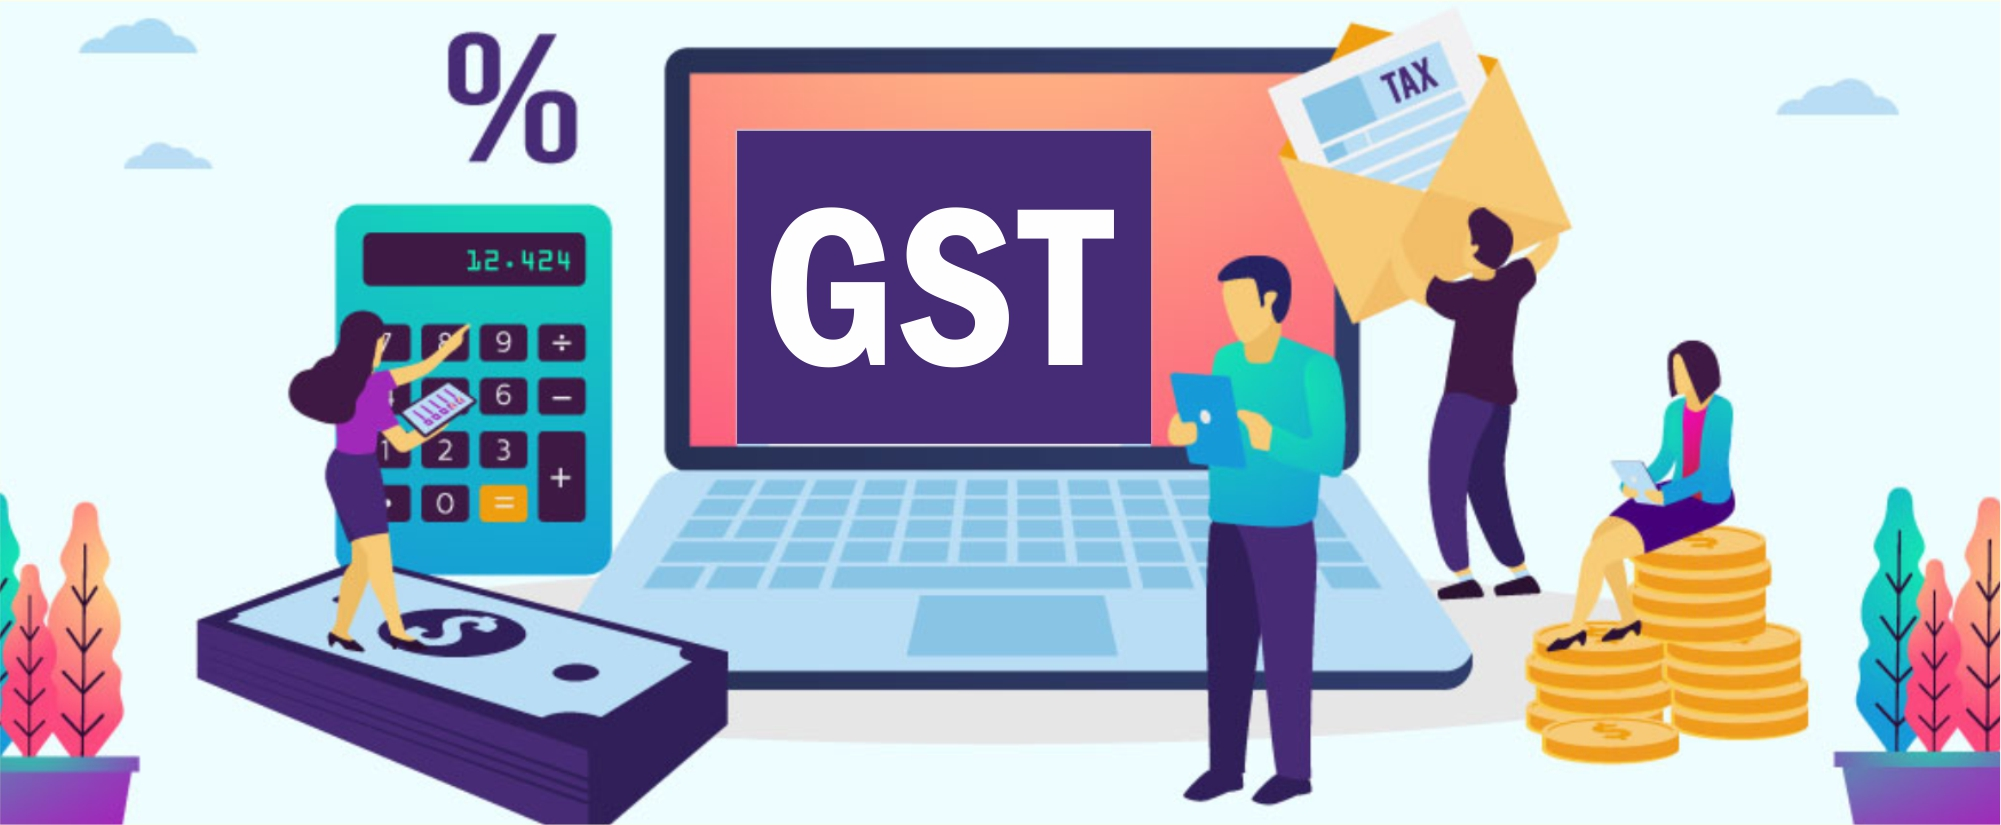 Types of GST and everything you need to know about GST | Alankit.com